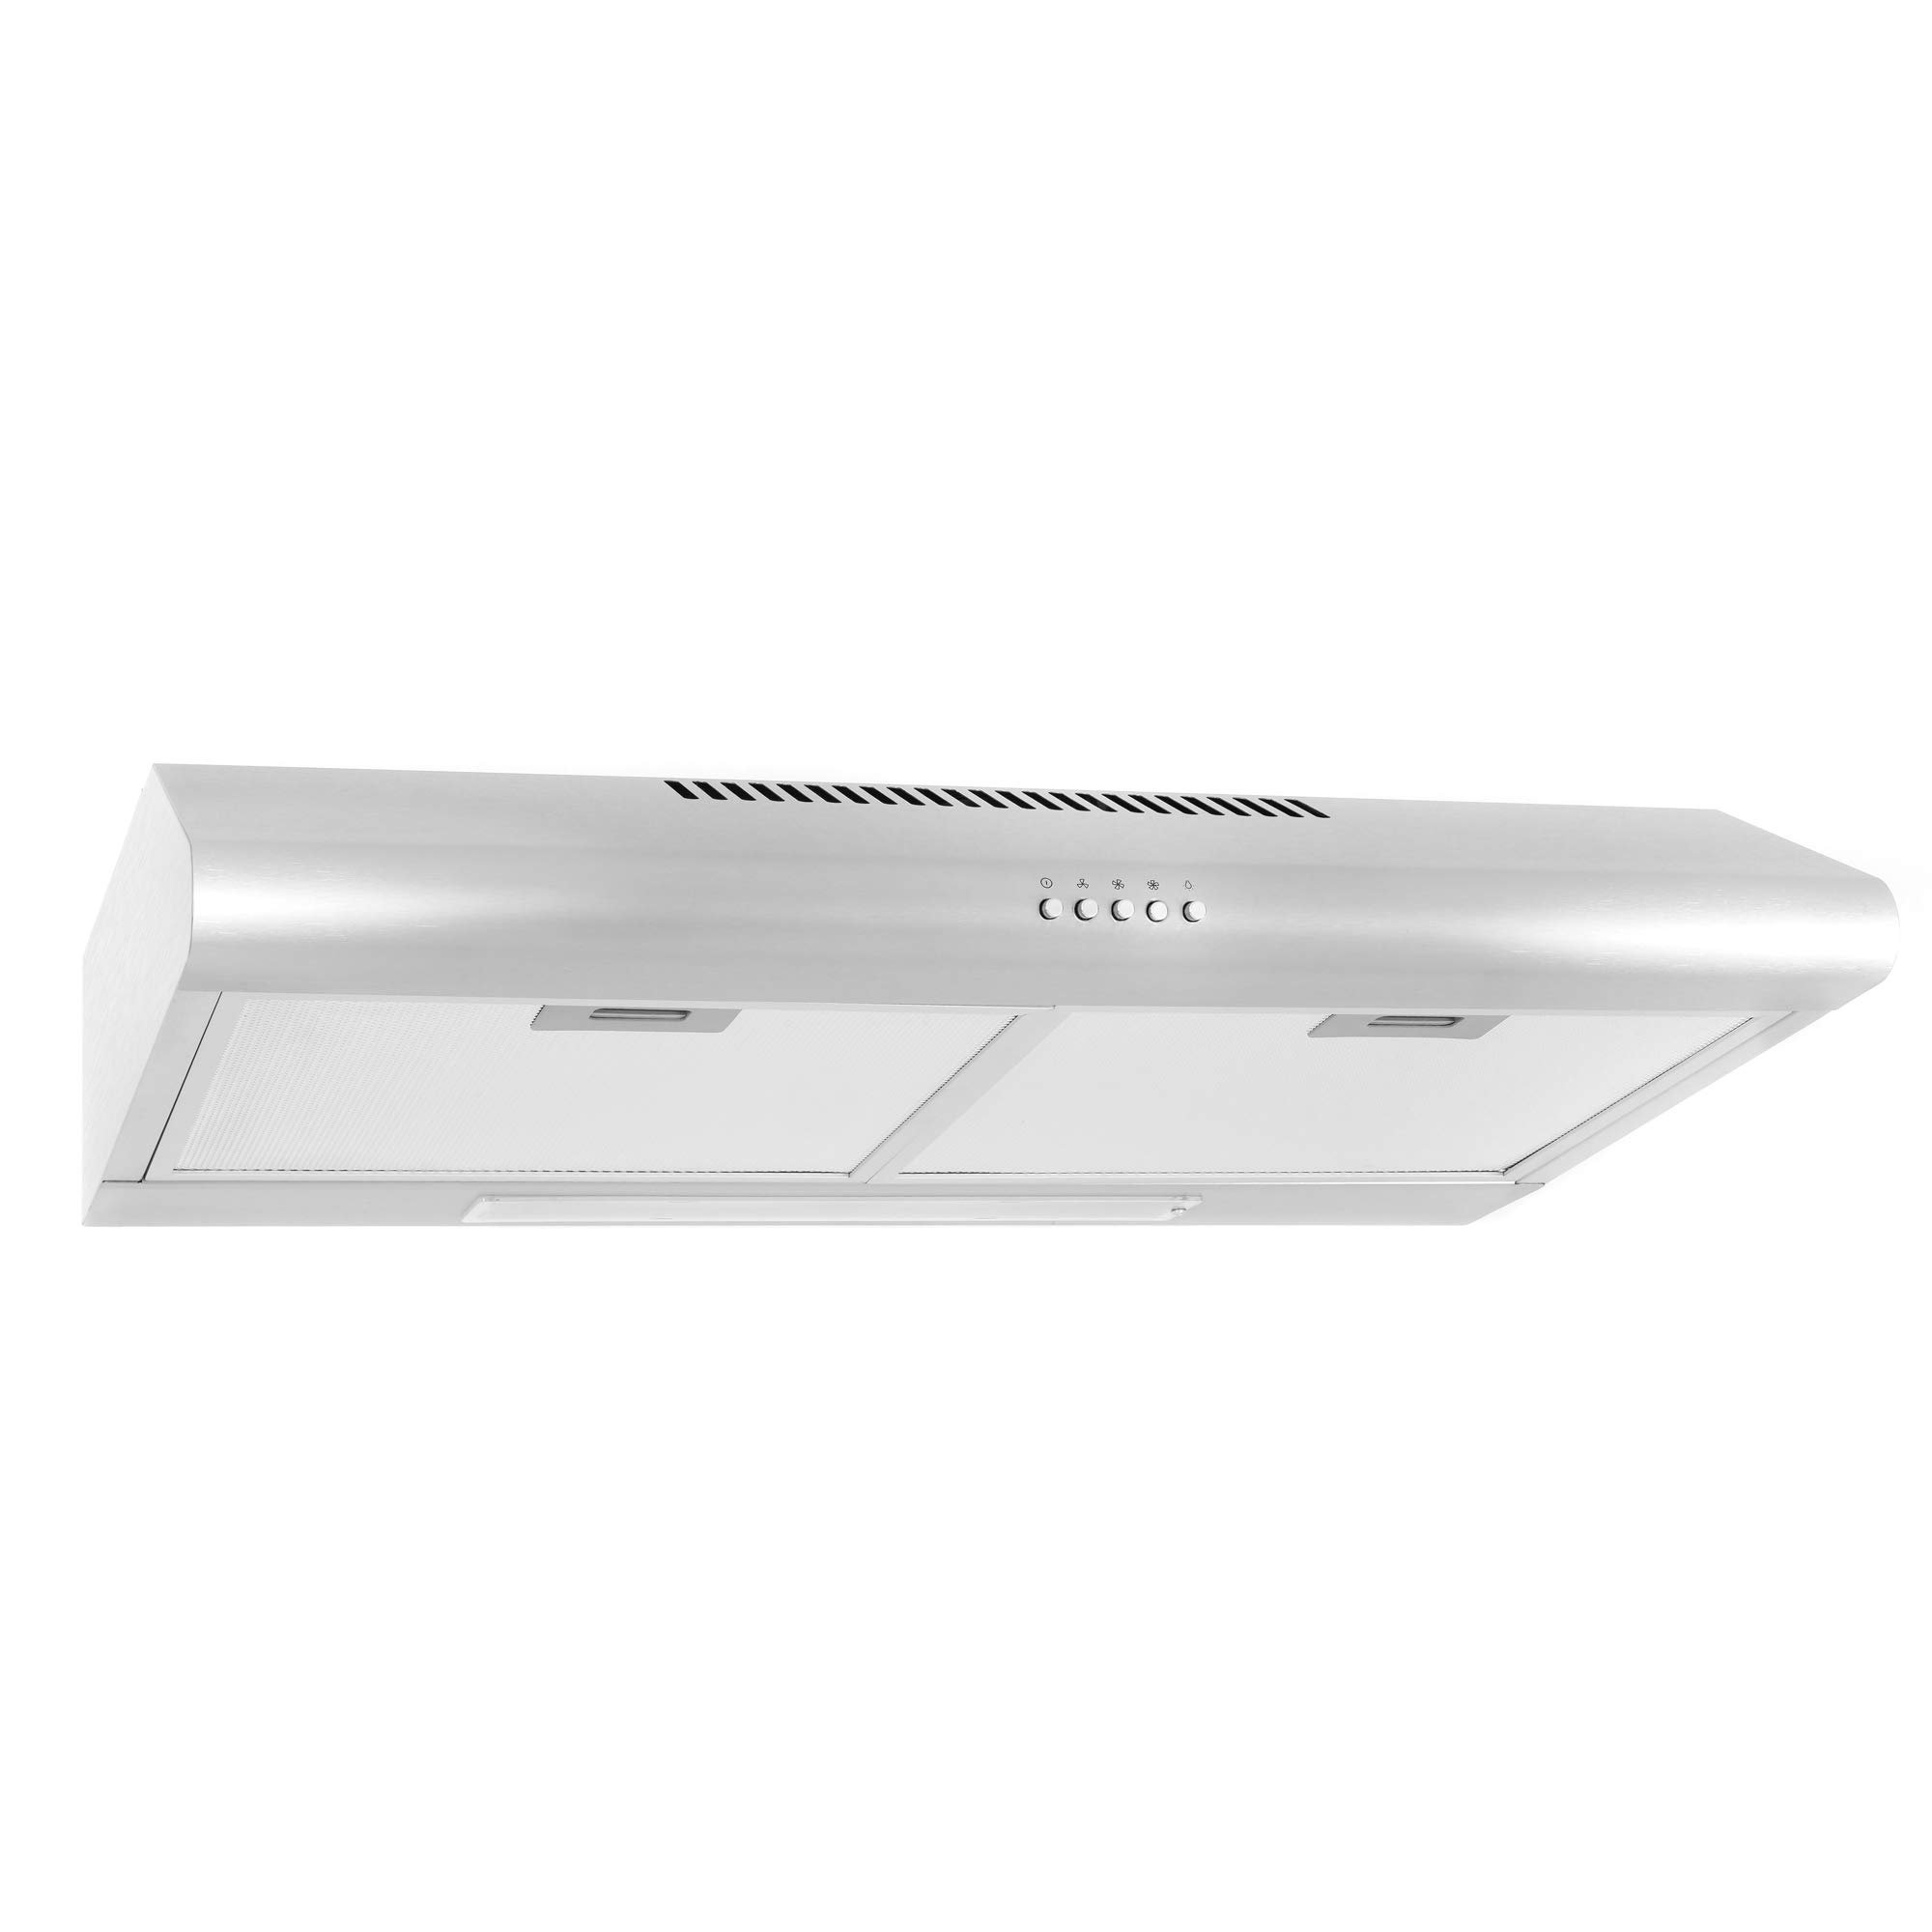 30 In Under Cabinet Range Hood 3 Speed Ducted Ductless